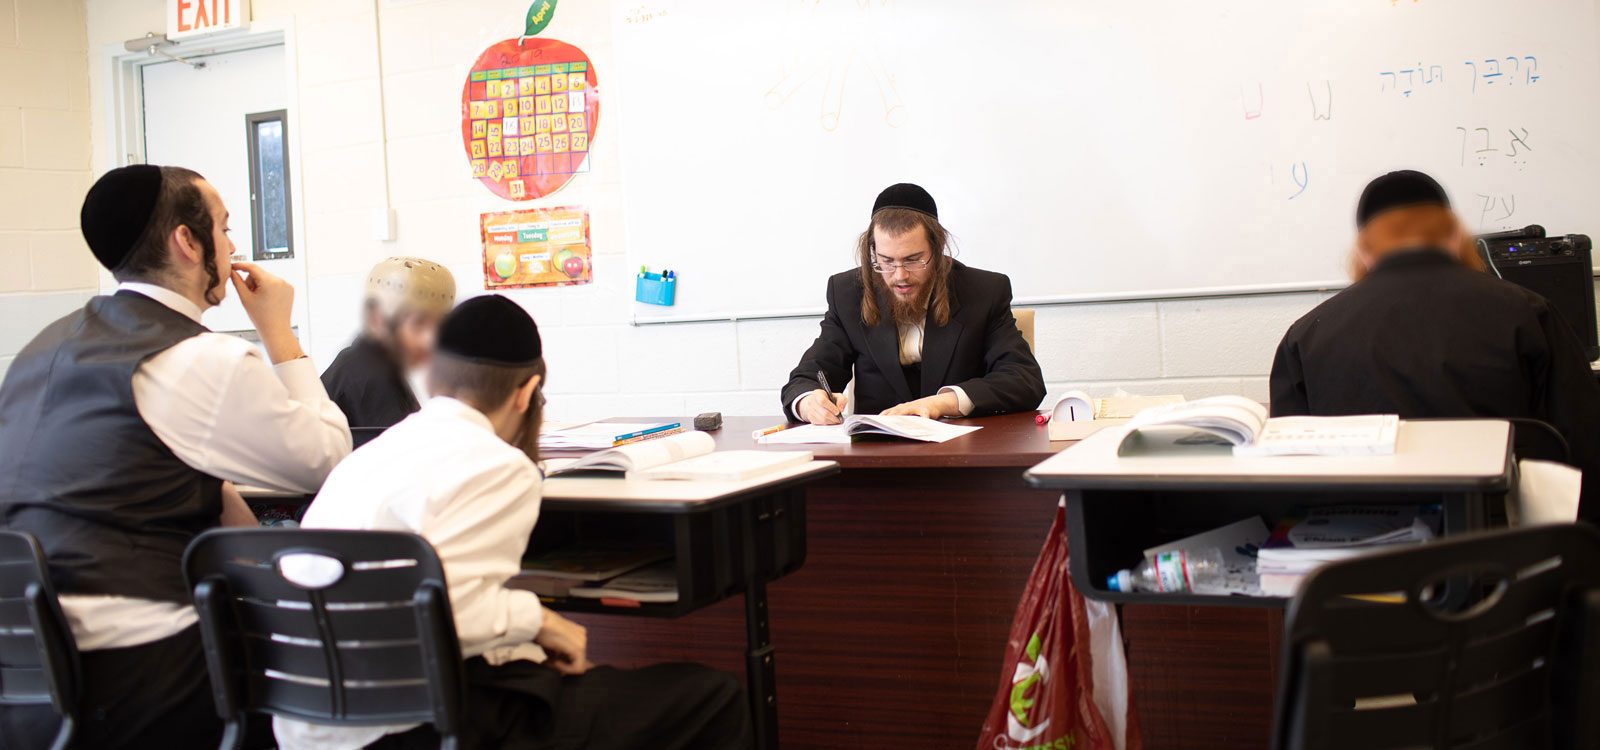 yeshiva ohr hayashor at Human Care Services